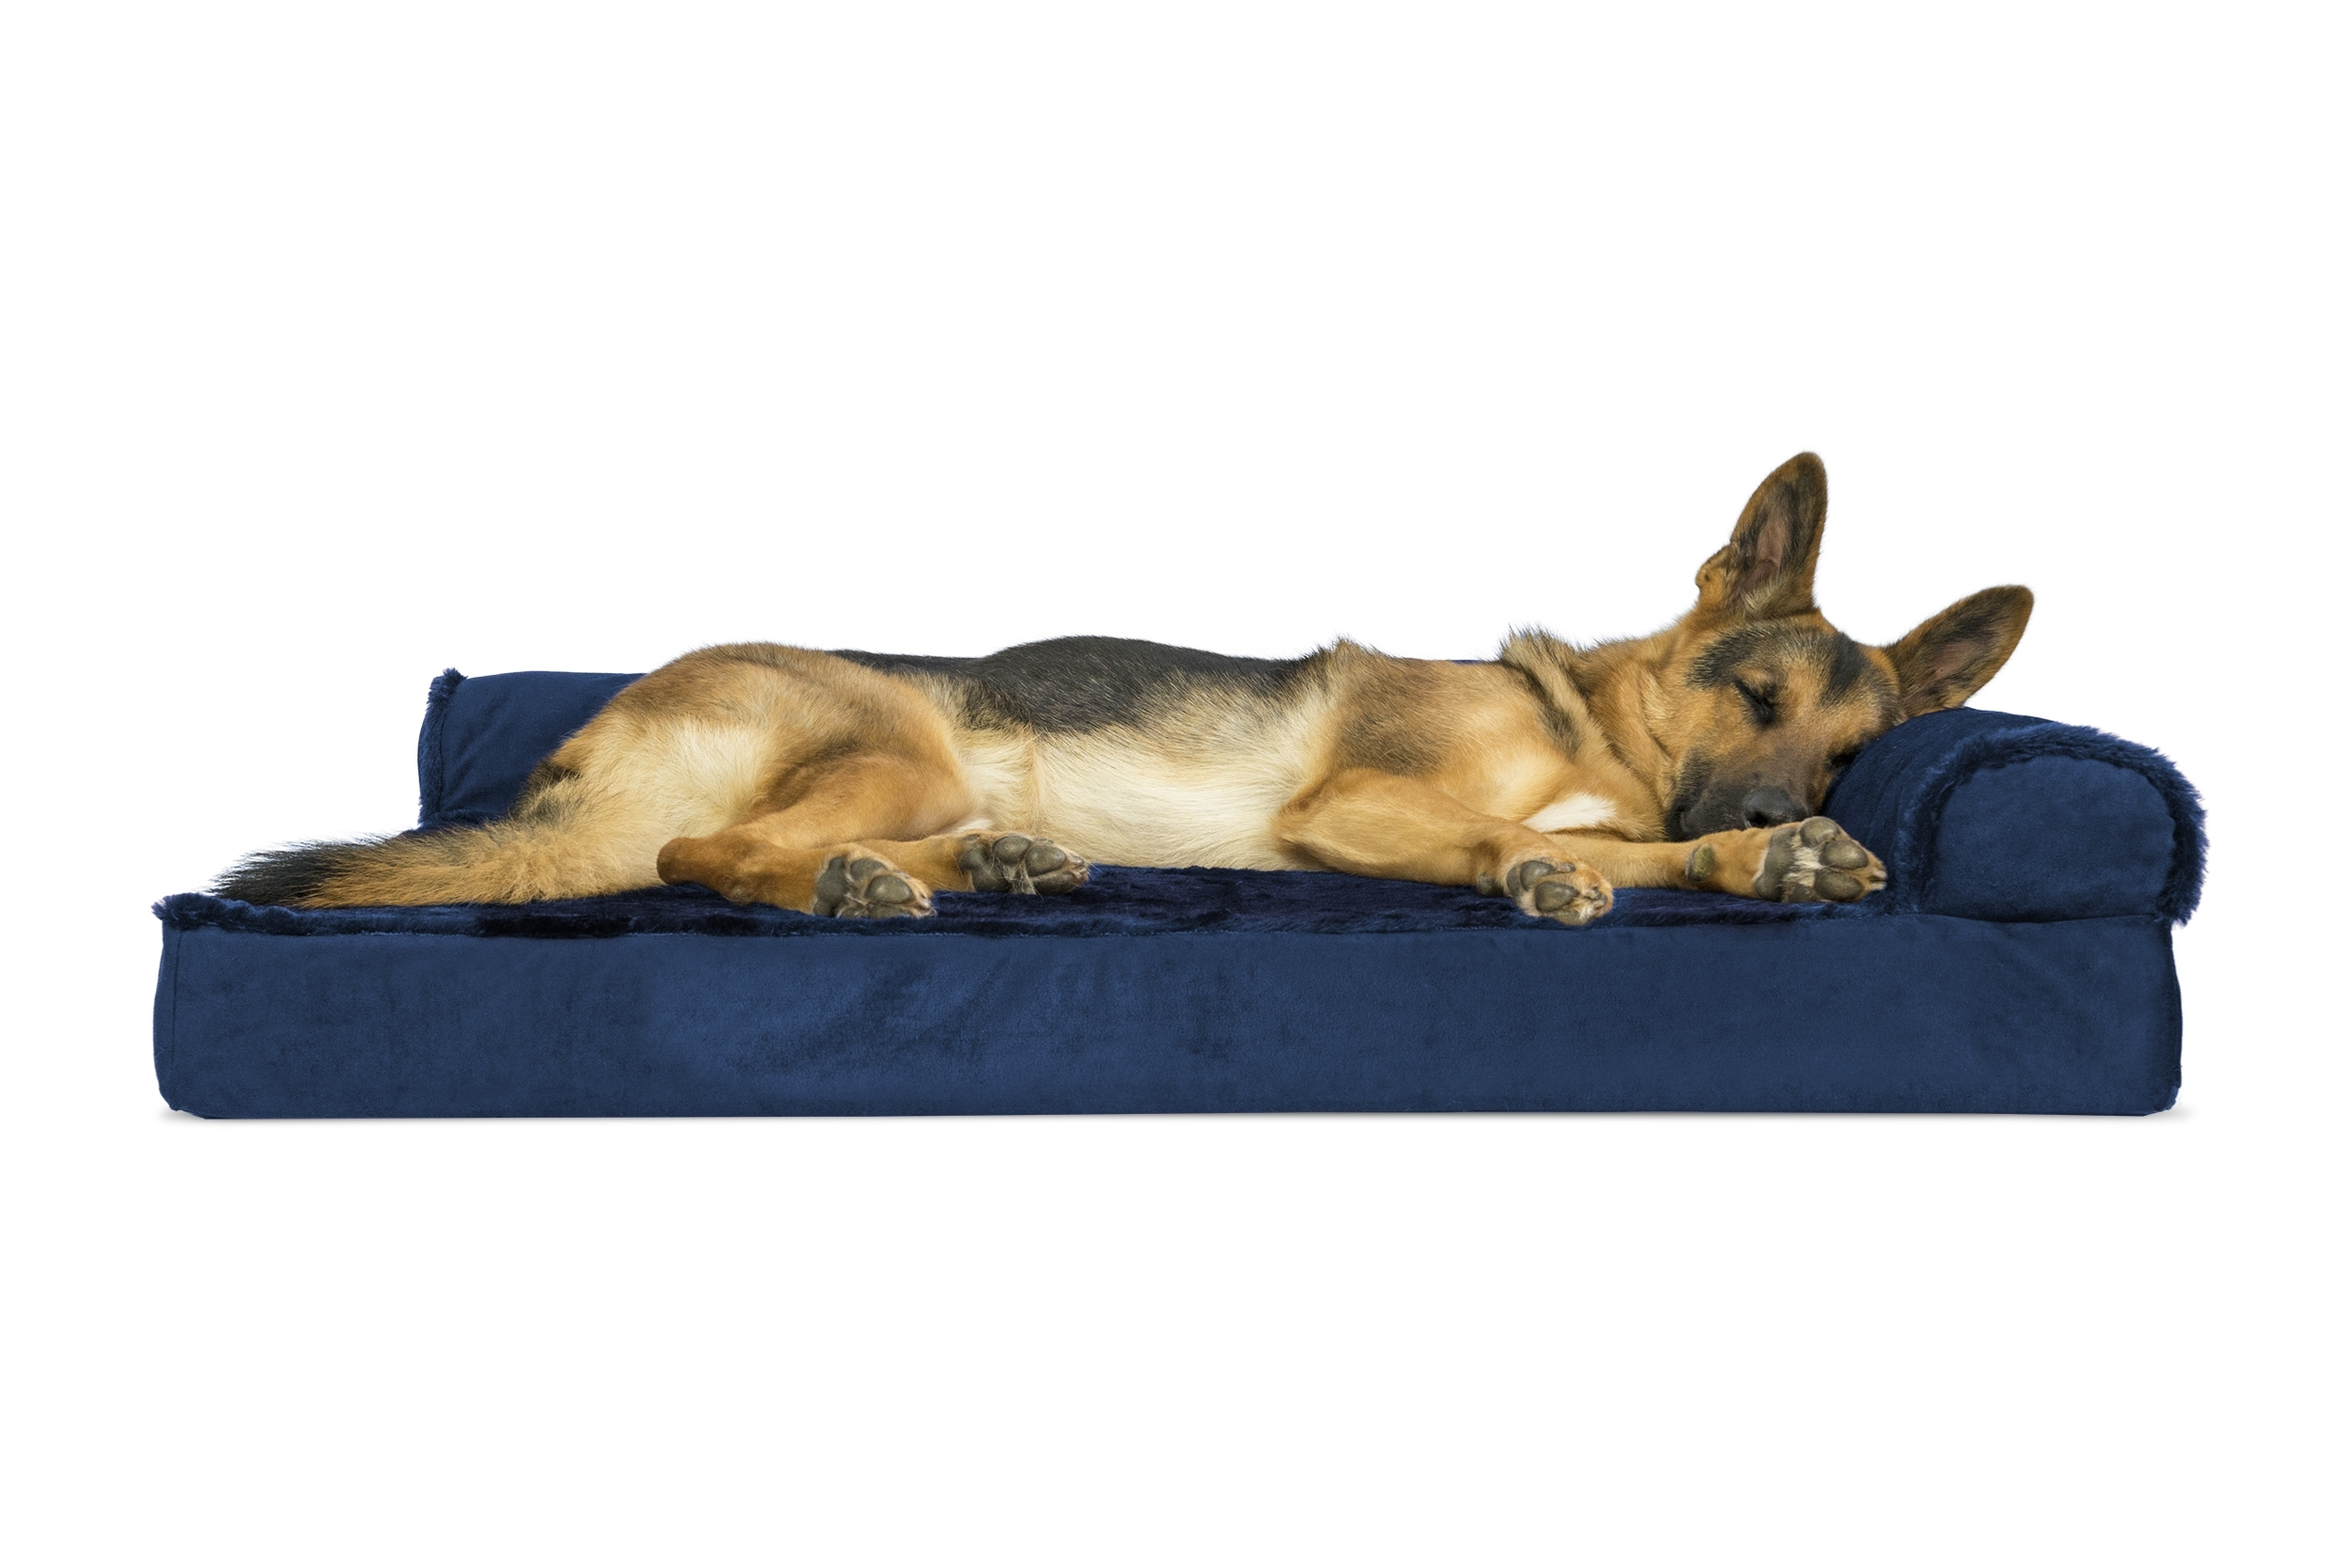 Latest Plush & Velvet Deluxe Chaise Lounge Orthopedic Sofa Style Pet Bed Pertaining To Dog Chaise Lounges (View 12 of 15)